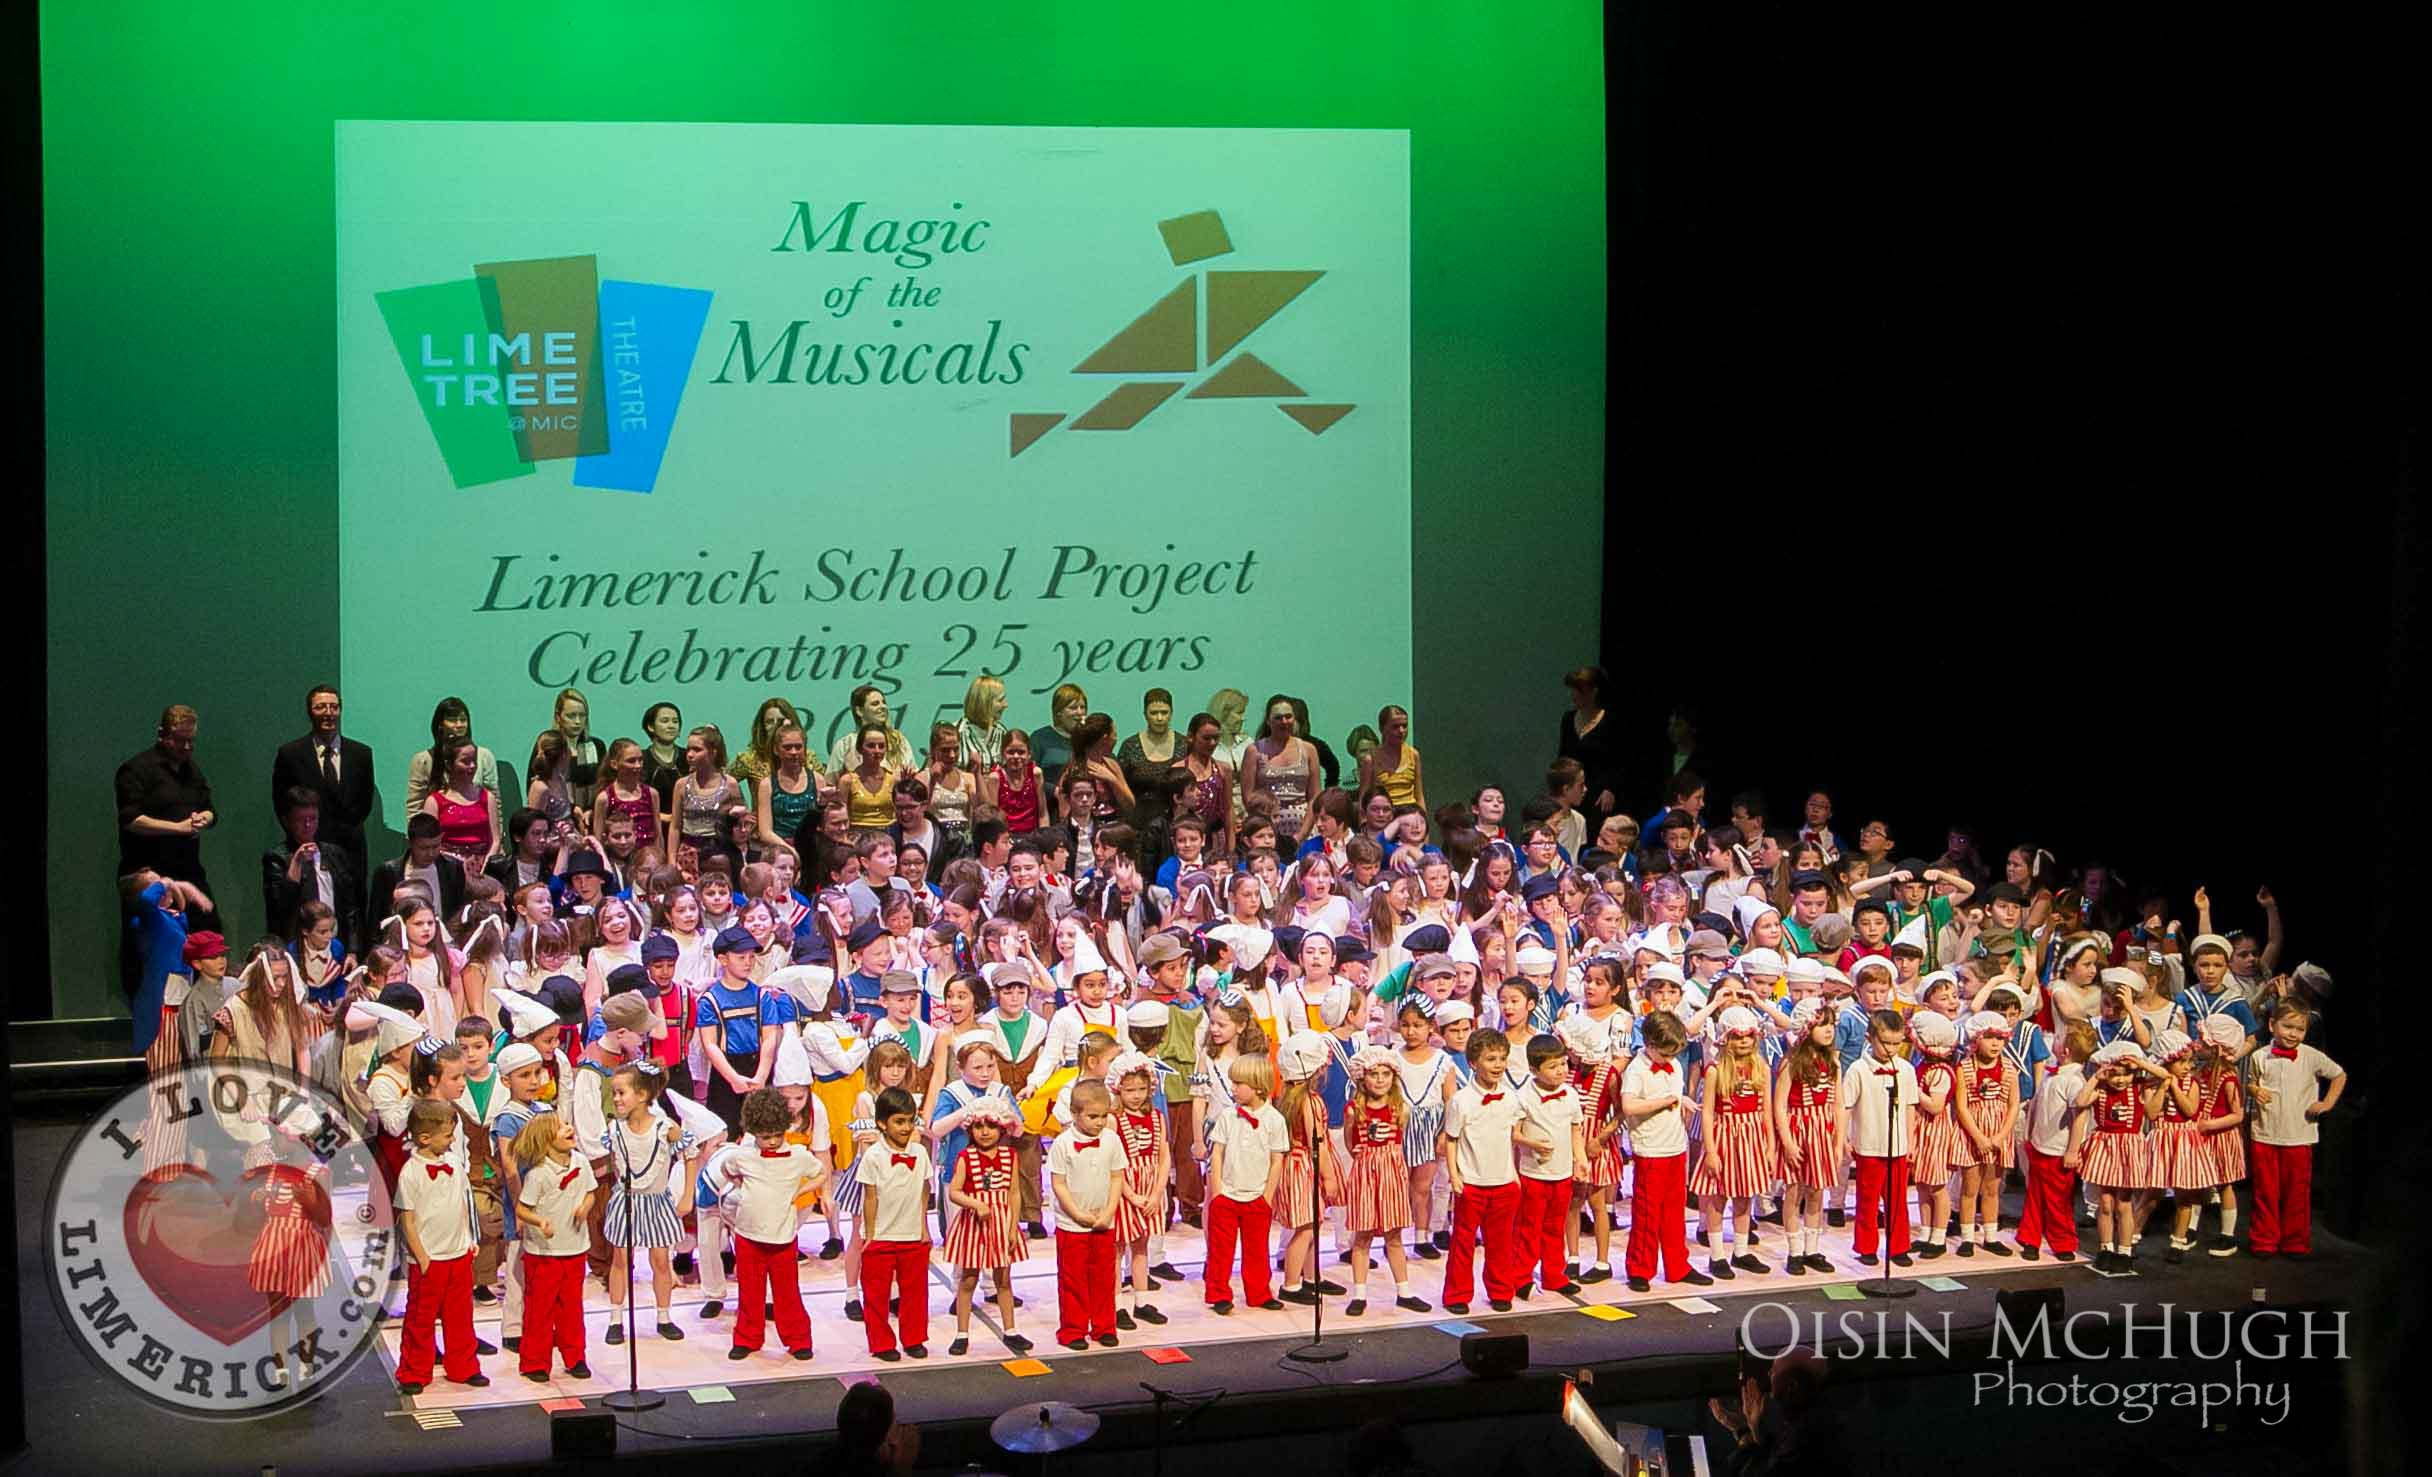 limerick school project magic of the musicals